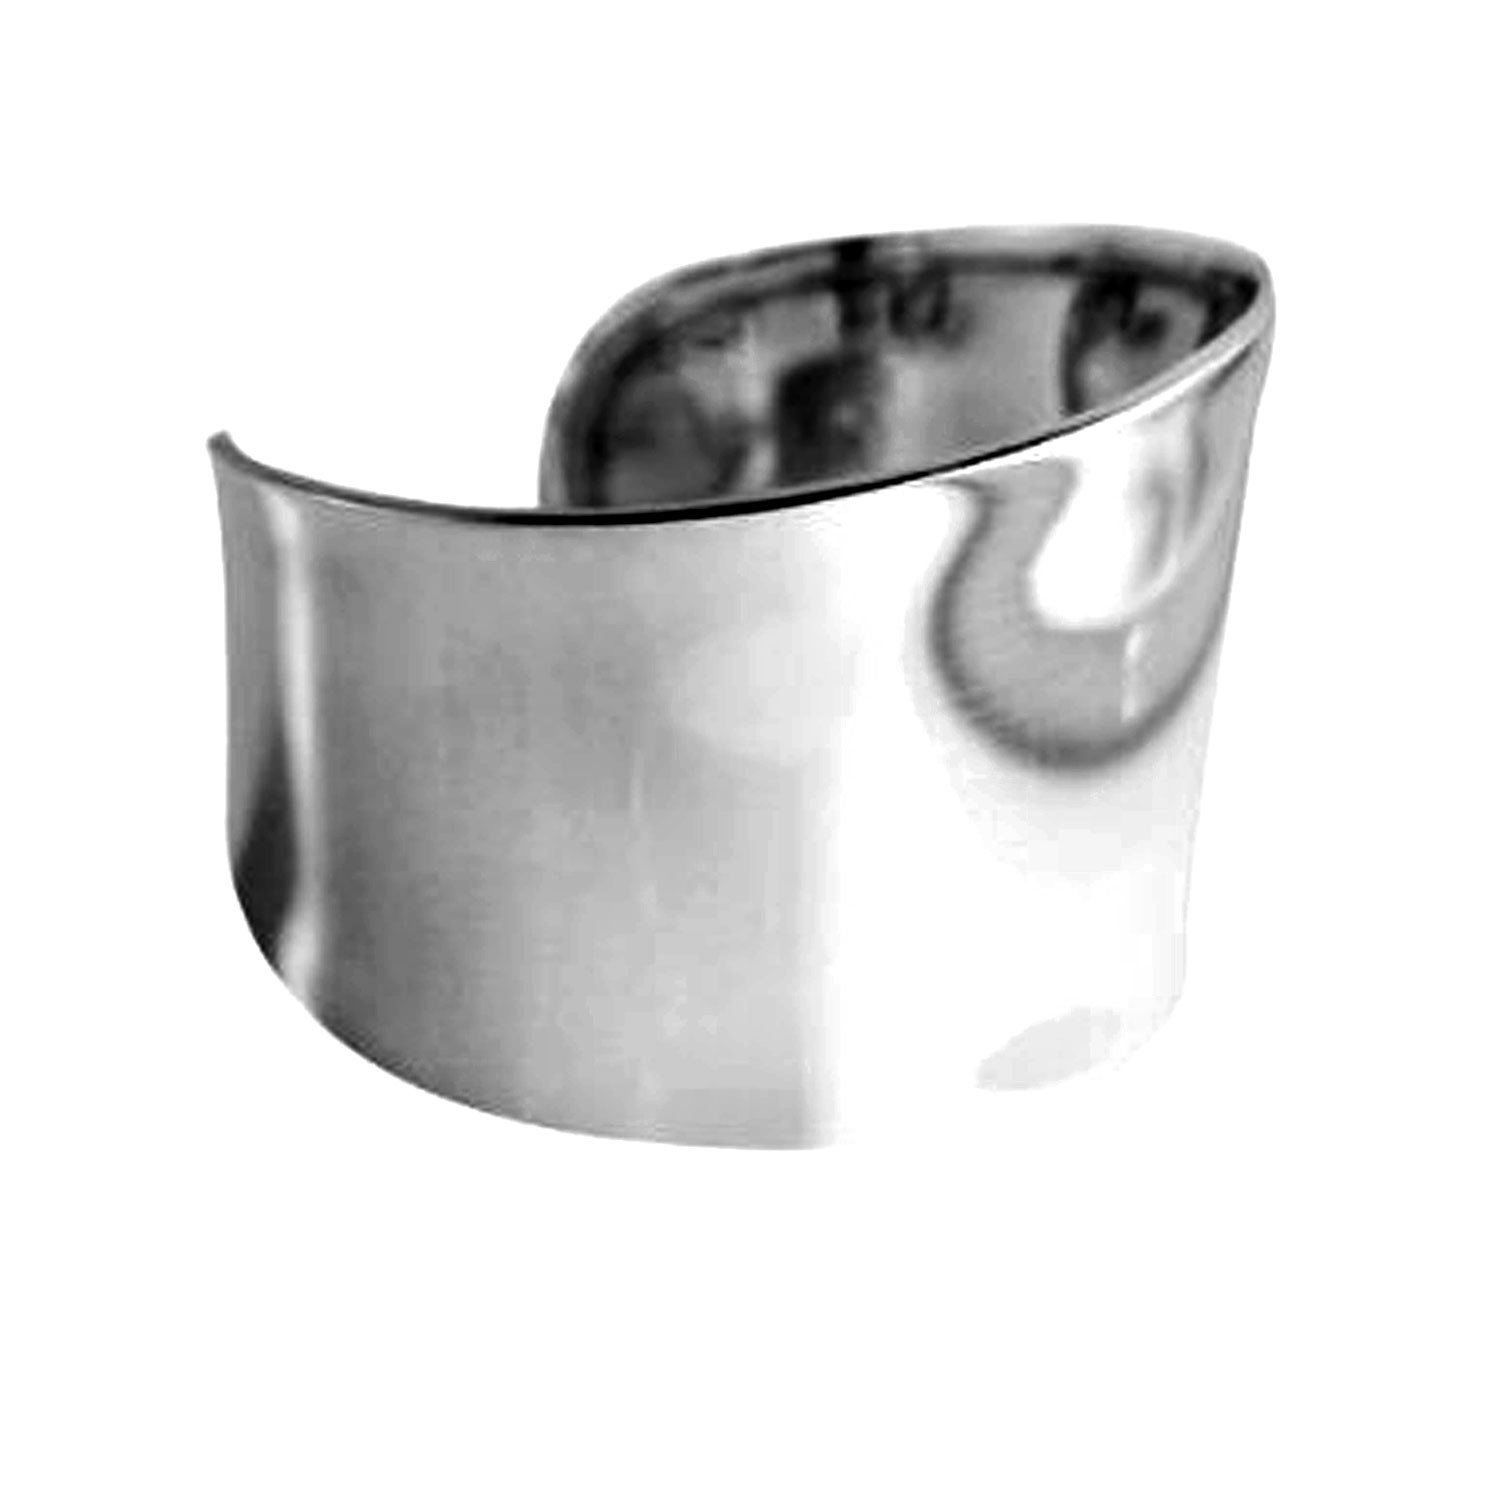 apop nyc 925 Sterling Silver Wide Statement Cuff Bangle Bracelet [Jewelry] by apop nyc (Image #1)